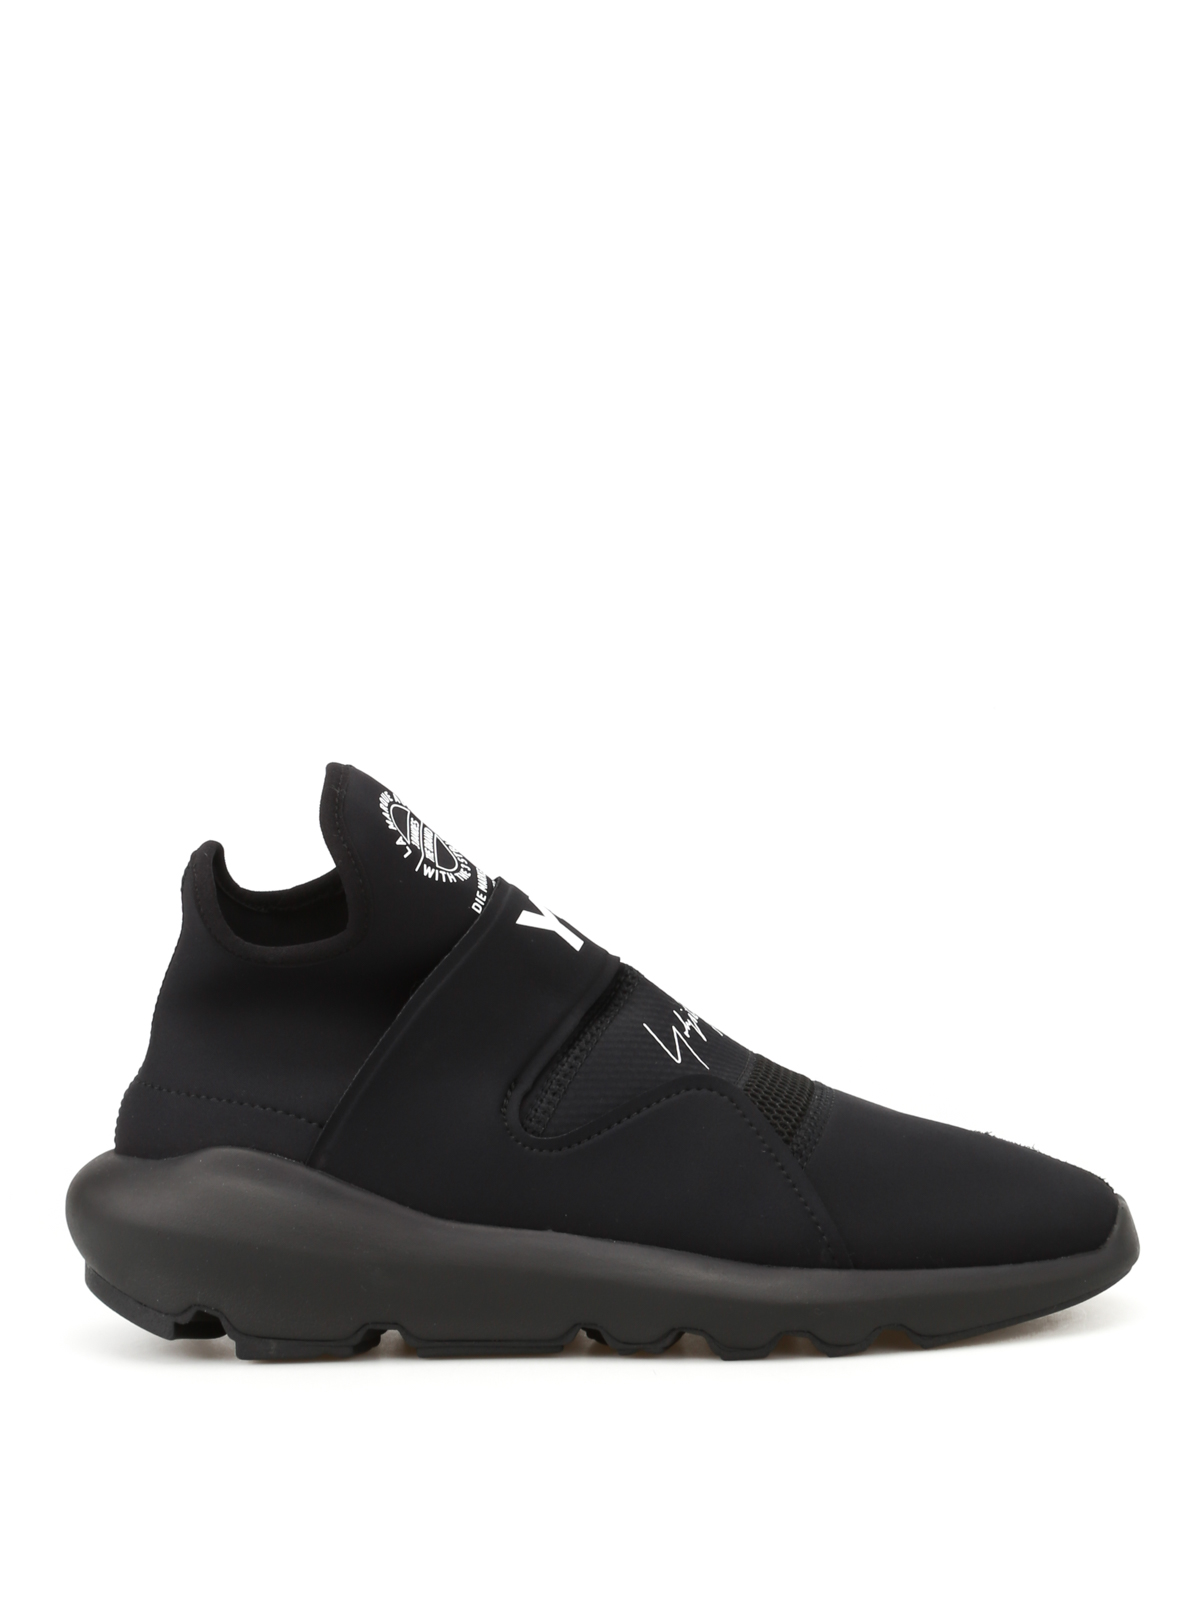 d0dafd95bbea Adidas Y-3 - Suberou black slip-on sneakers - trainers - AC7201